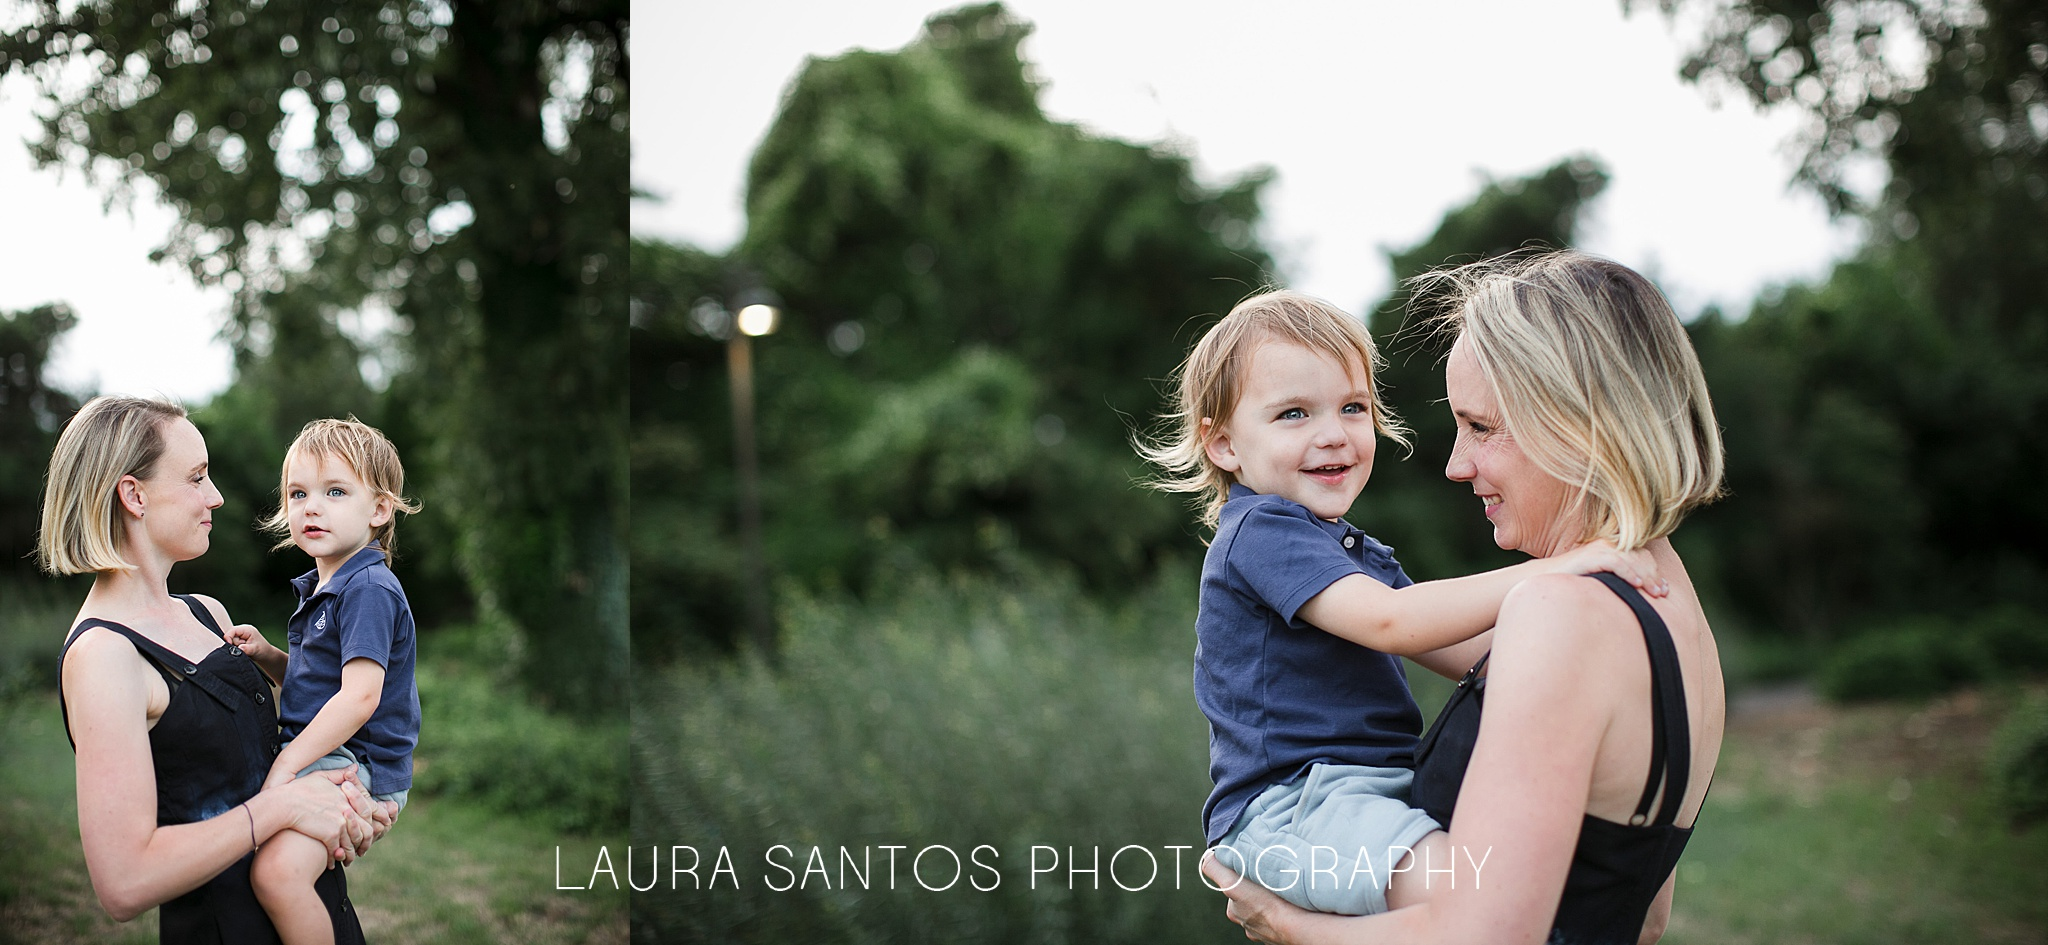 Laura Santos Photography Portland Oregon Family Photographer_1045.jpg